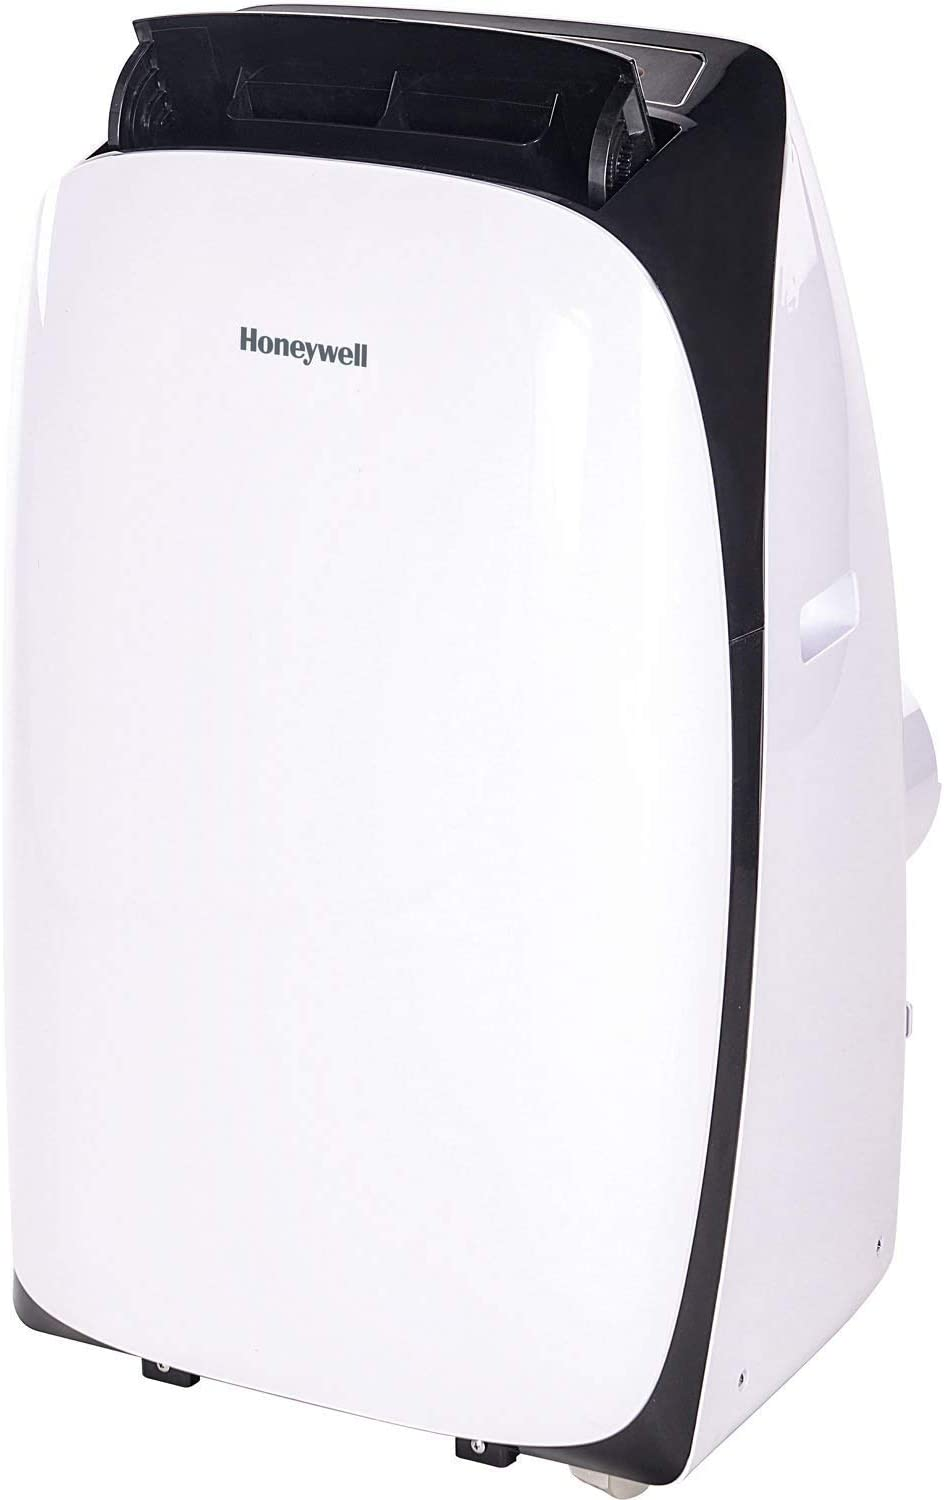 Honeywell Portable Air Conditioner with Heat 4 in 1 Multi-Functional, Dehumidifier Fan for Rooms up to 550-700 Sq.Ft with Remote Control